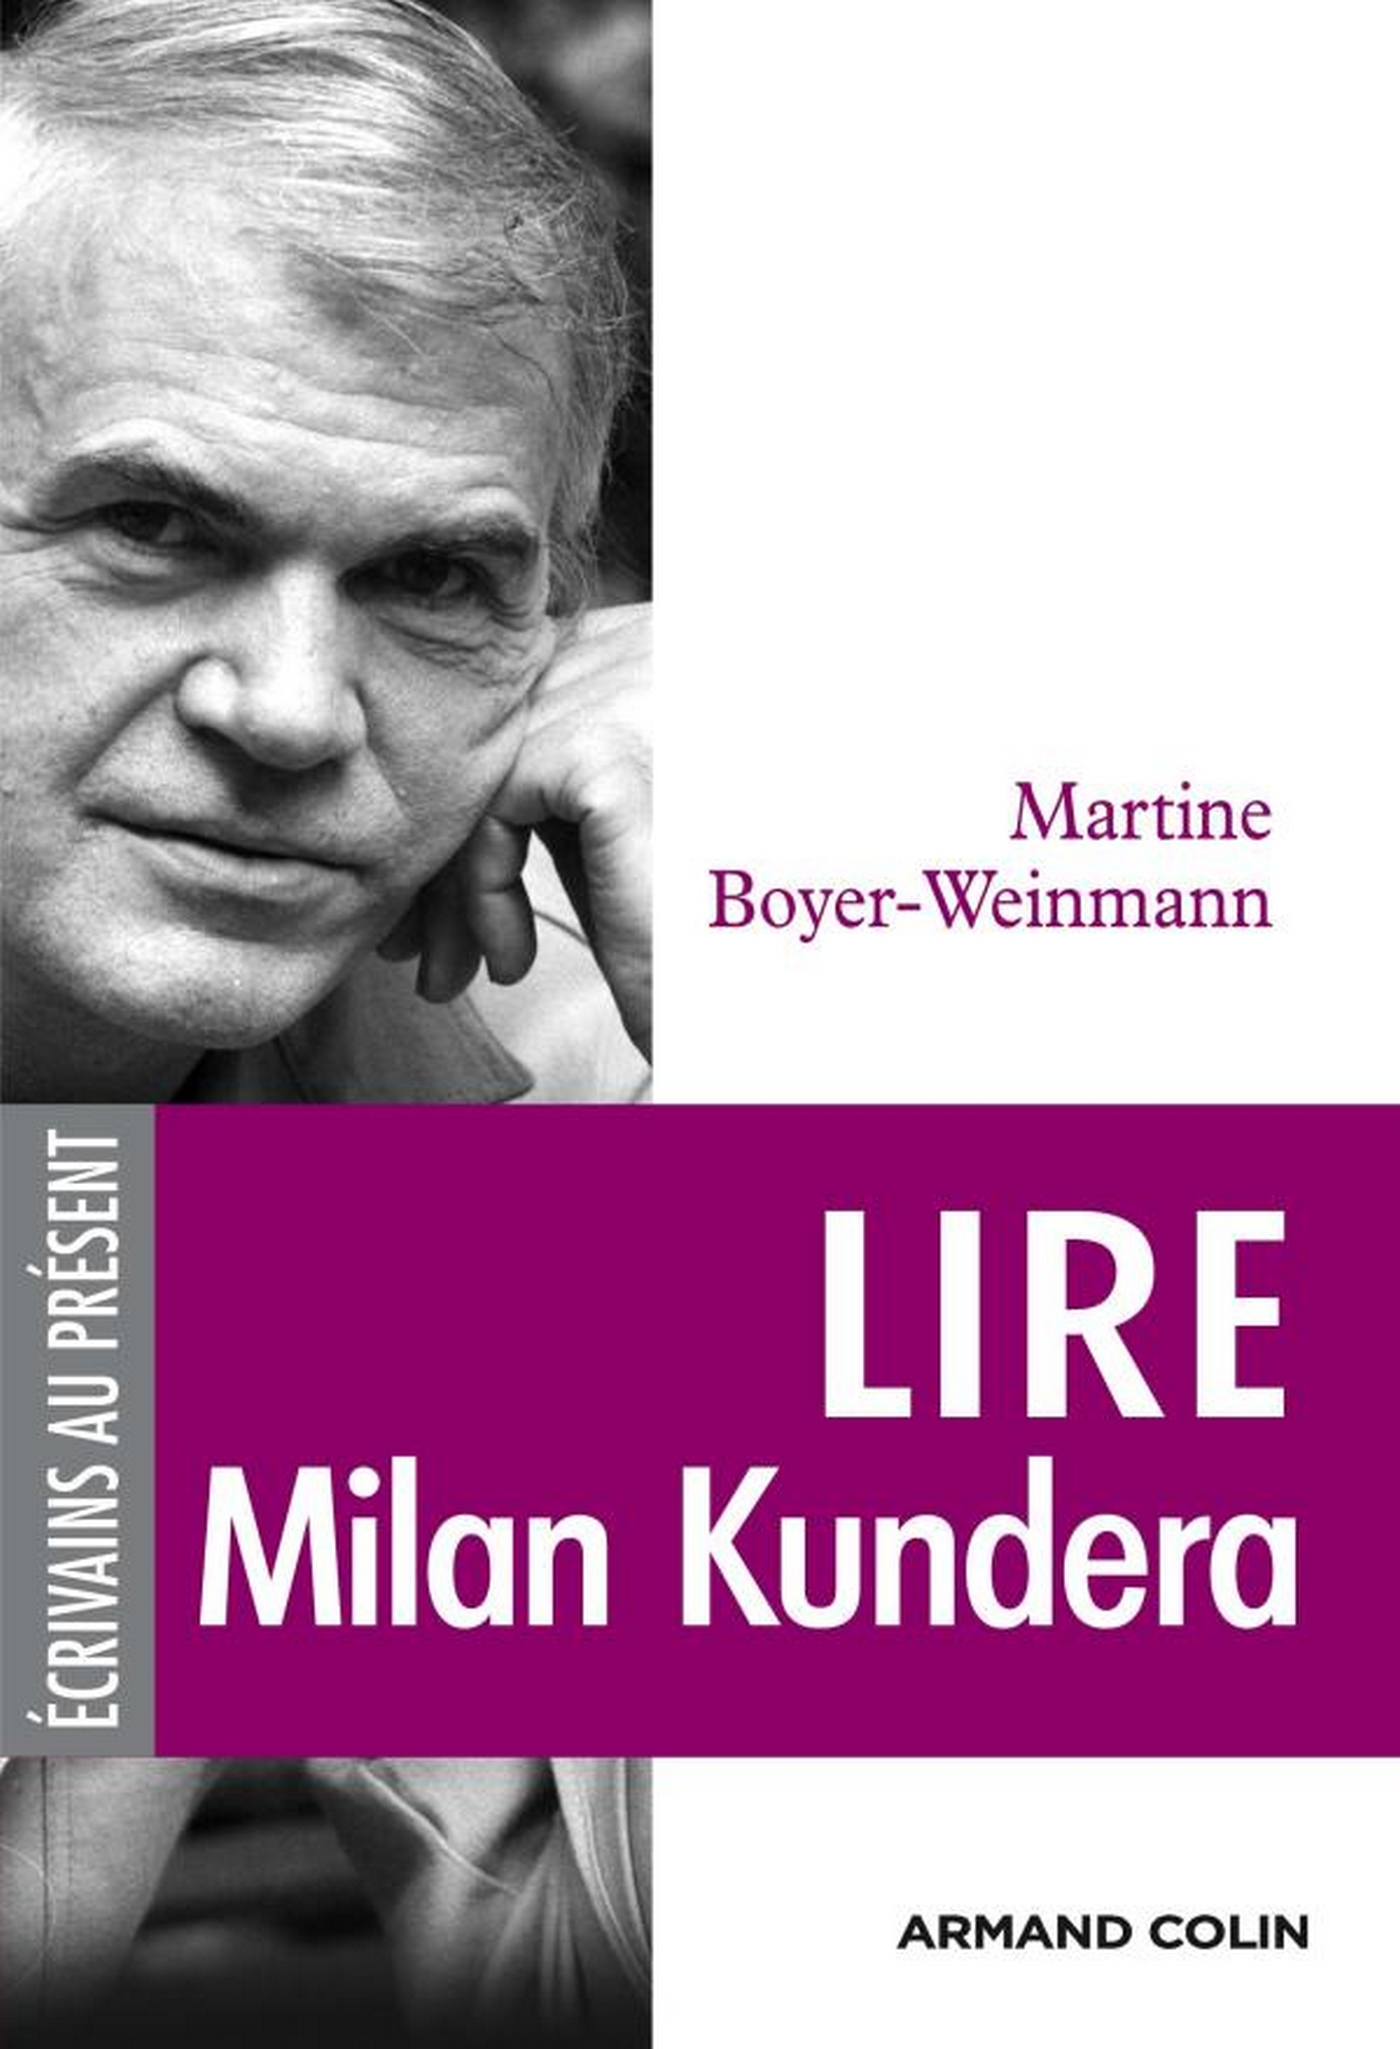 milan kundera and the art of fiction critical essays This interview is a product of several encounters with milan kundera in paris in the fall of 1983 our meetings took place in his attic apartment near montparnasse we worked in t.